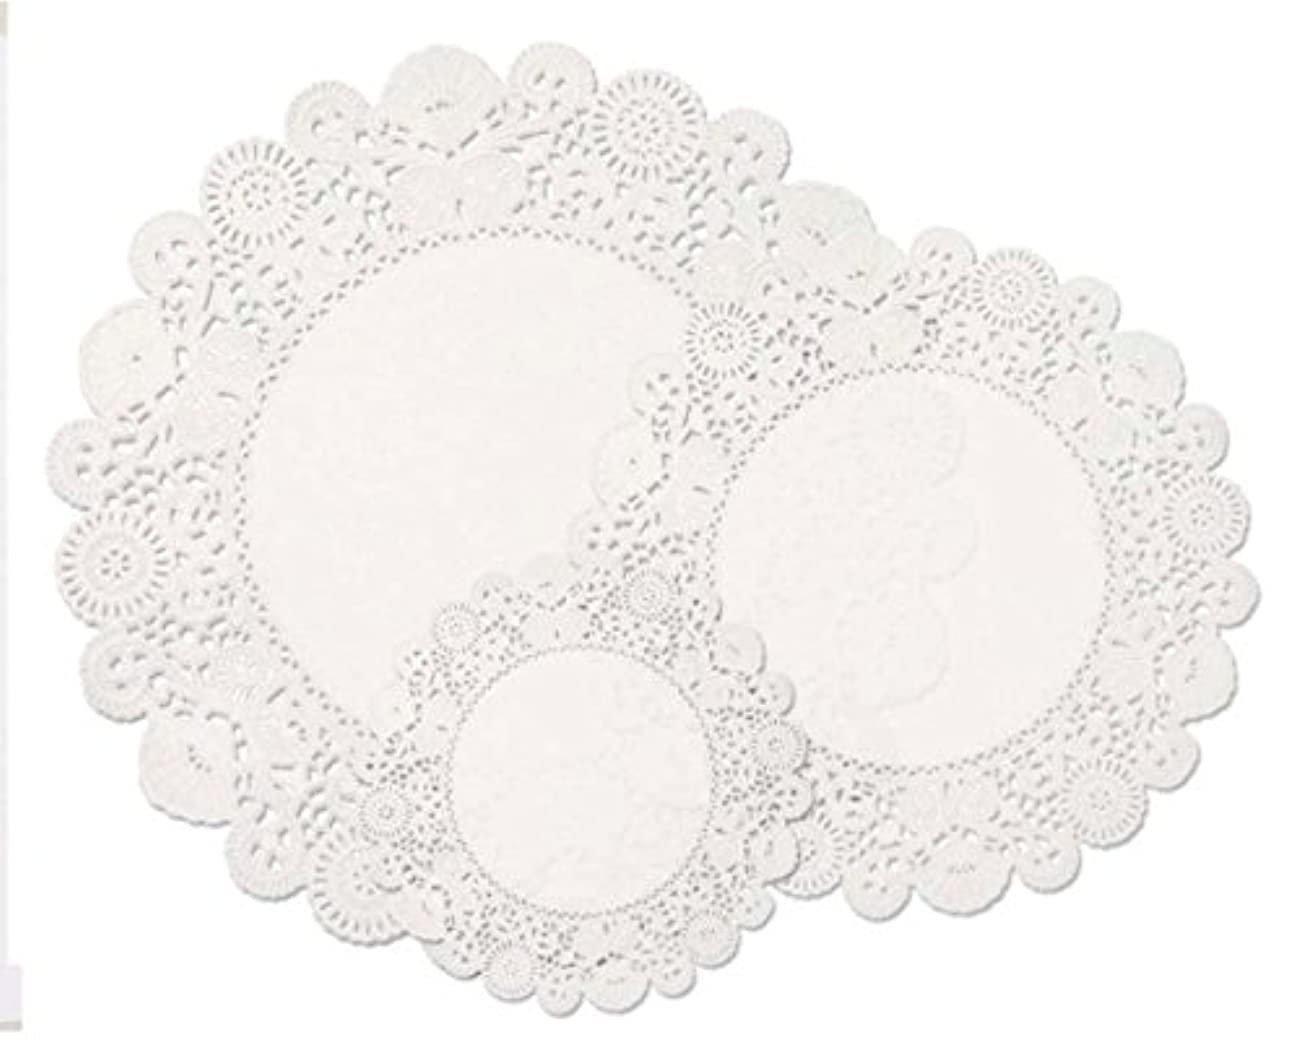 Hygloss Products White Round Doilies- Assorted Size Decorative Doily Pack Made in the USA, 96 Pieces